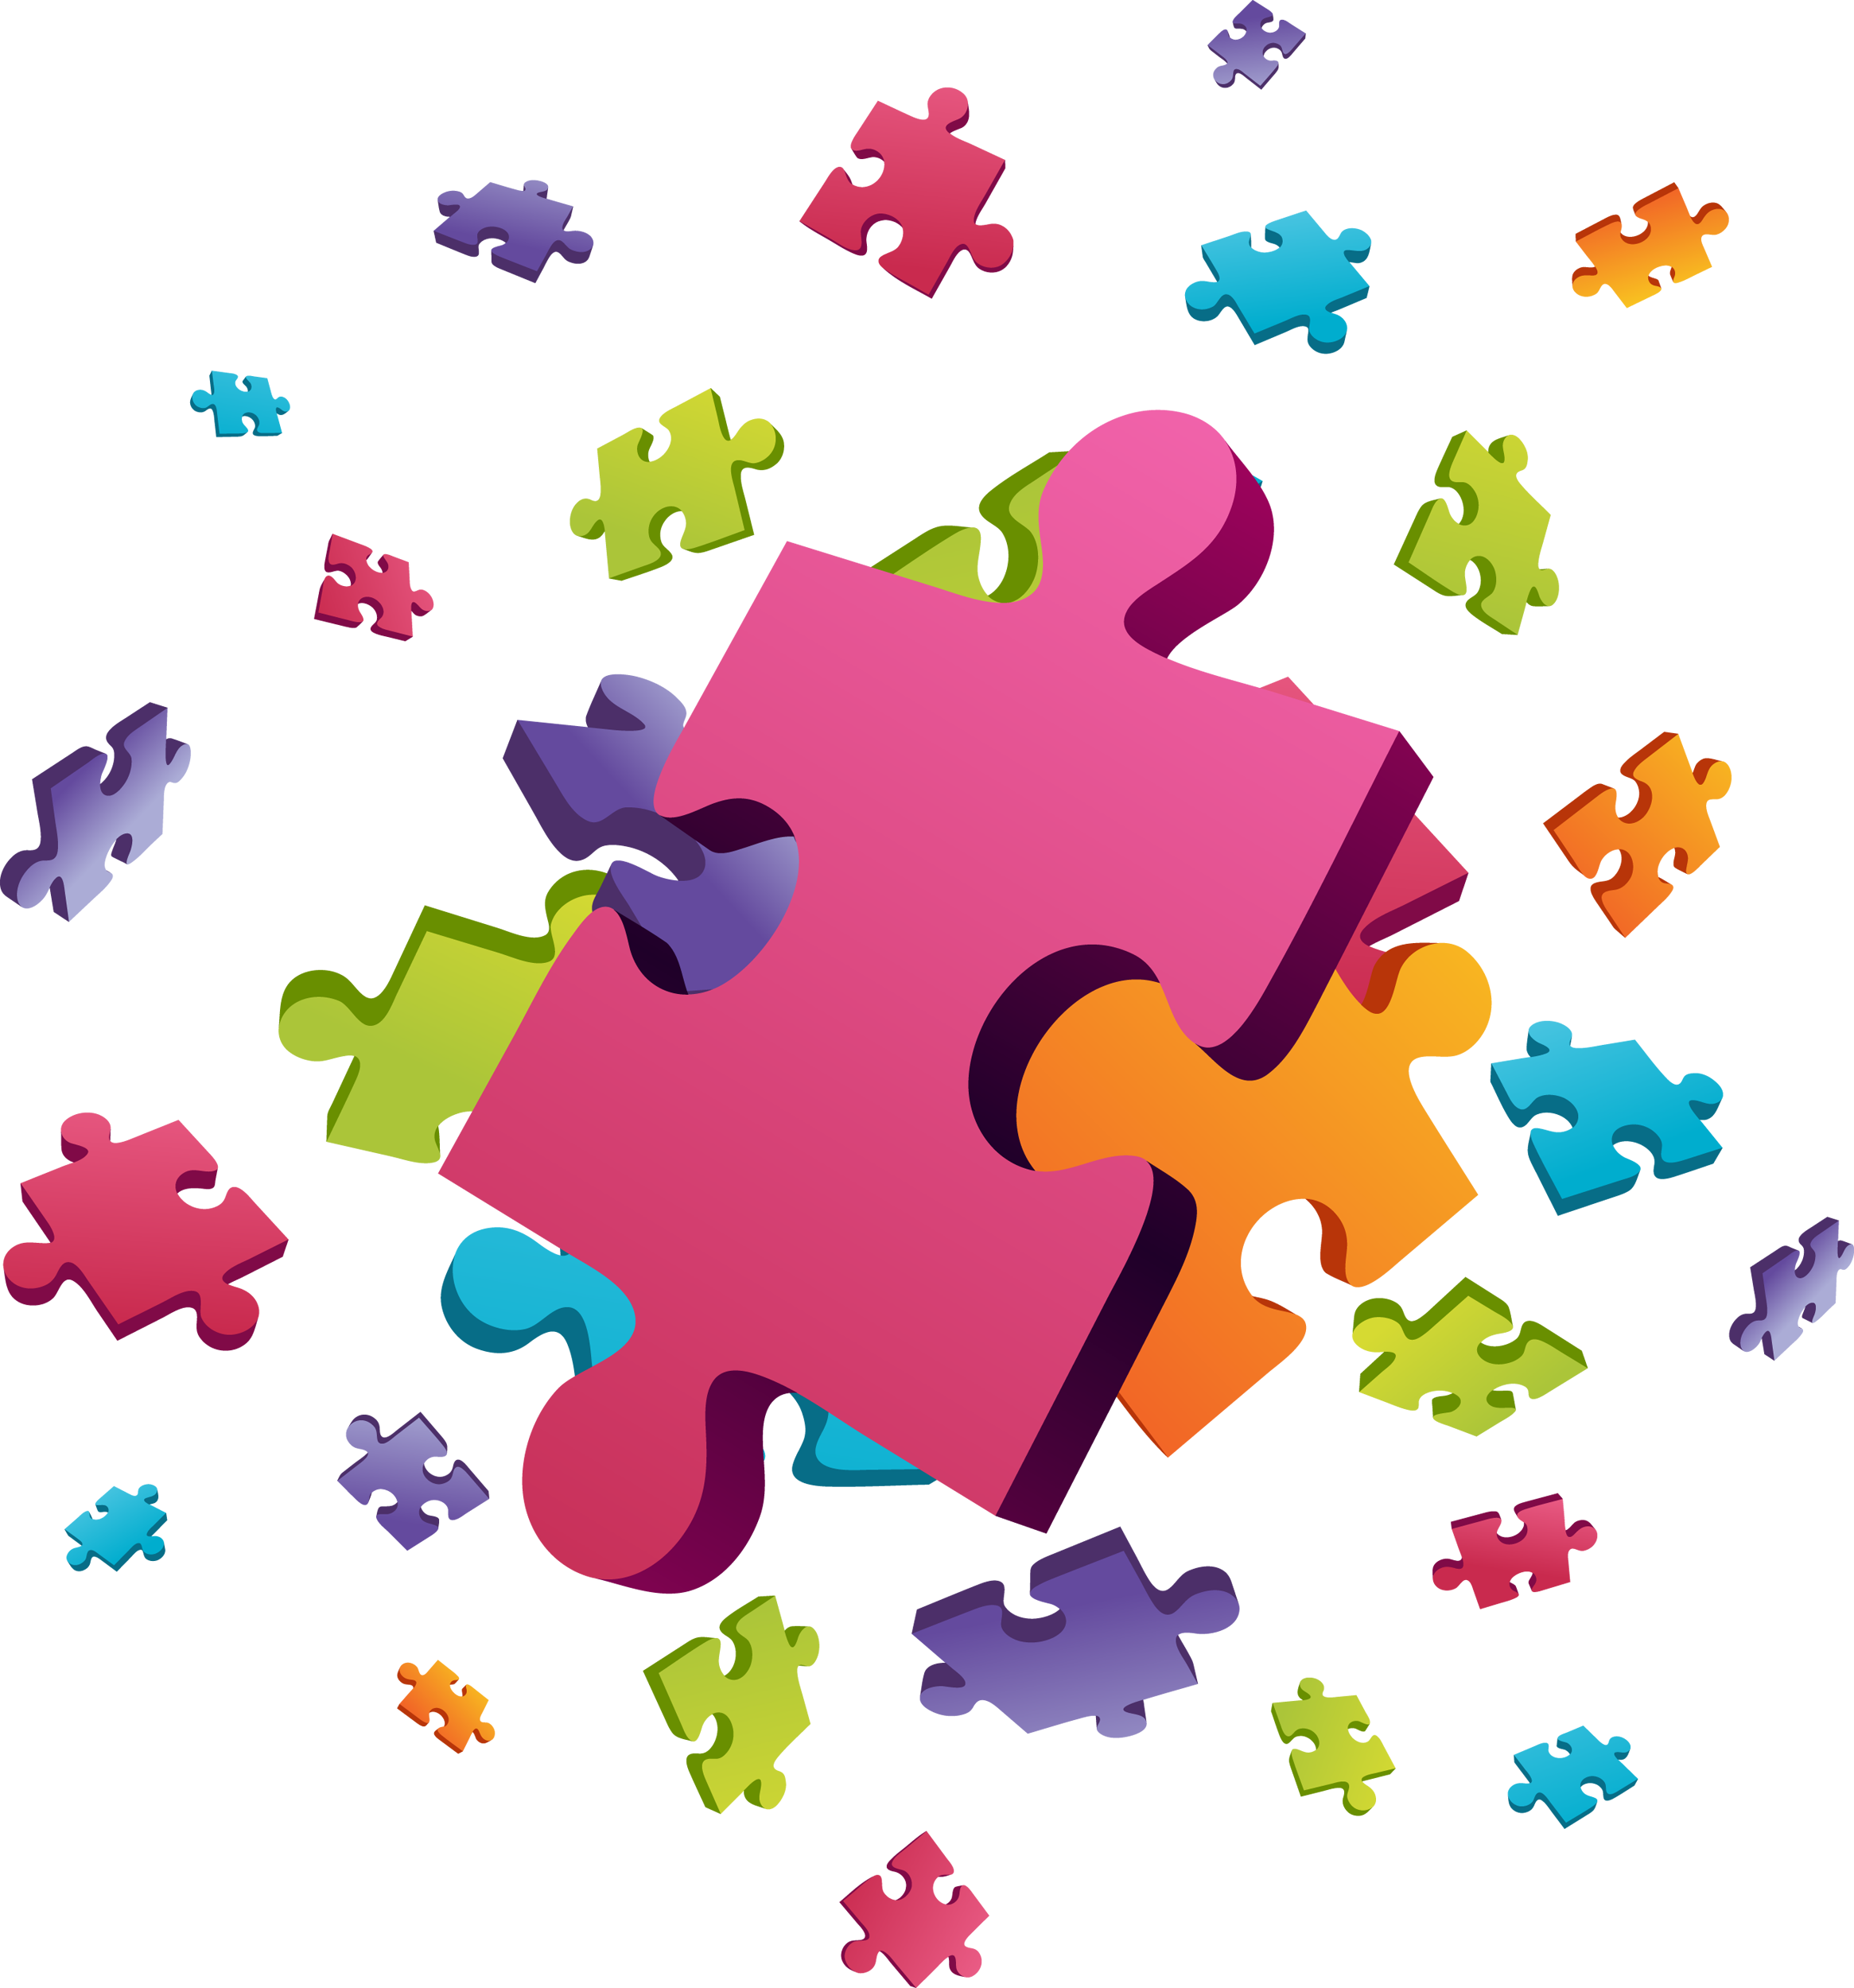 House puzzle clipart picture freeuse library 0_11df8f_5489b3ae_orig.png (2331×2500) | ❅ Clipart ❅ (Клипарт ... picture freeuse library